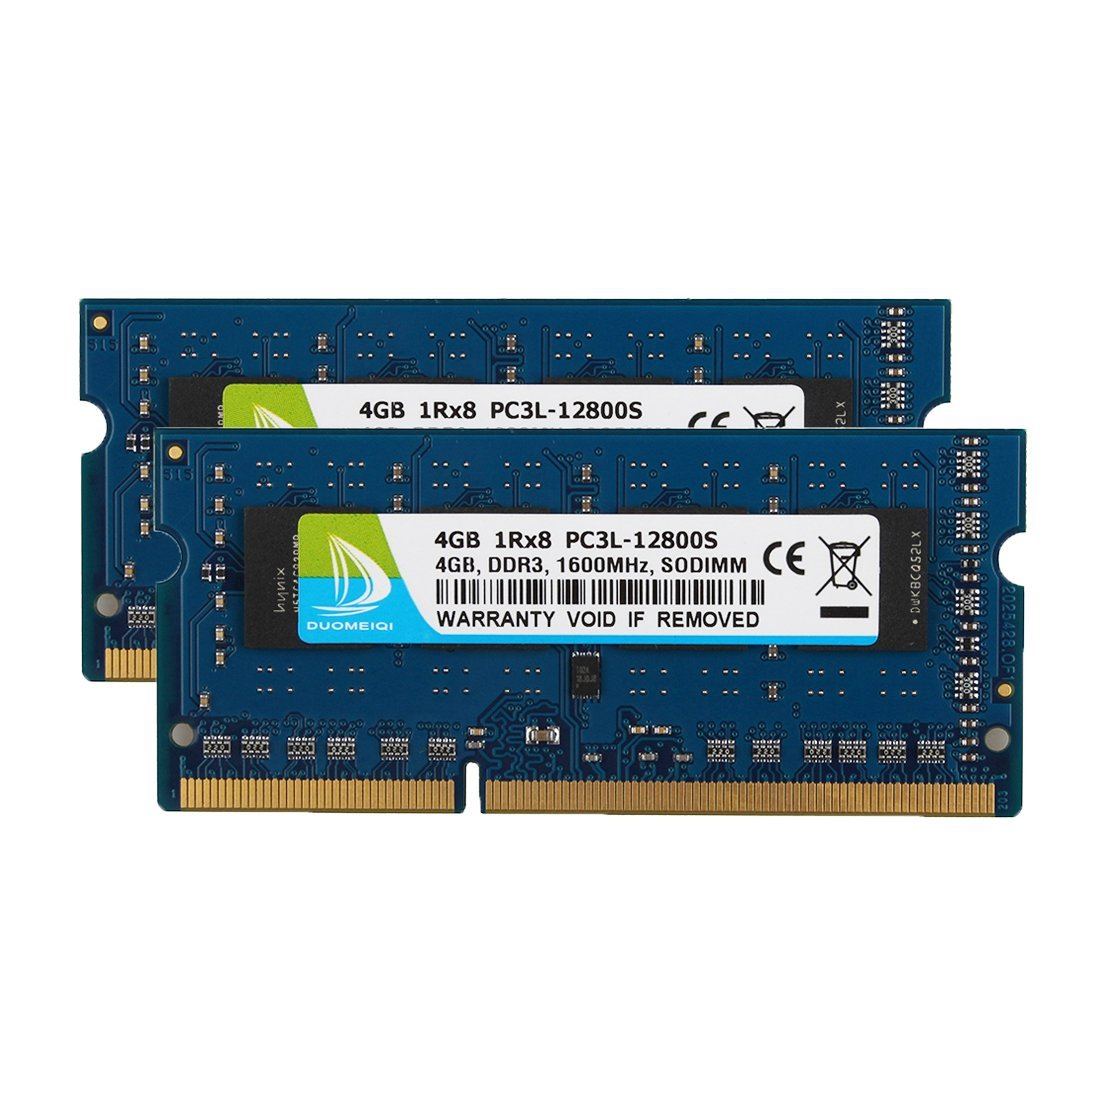 DUOMEIQI 8GB Kit (2 X 4GB) DDR3L 1600MHz Sodimm 1RX8 PC3L-12800S 204pin 1.35v / 1.5v CL11 Unbuffered, Non-ECC Dual Channel Notebook Memory Laptop RAM Module for Intel AMD and Mac System